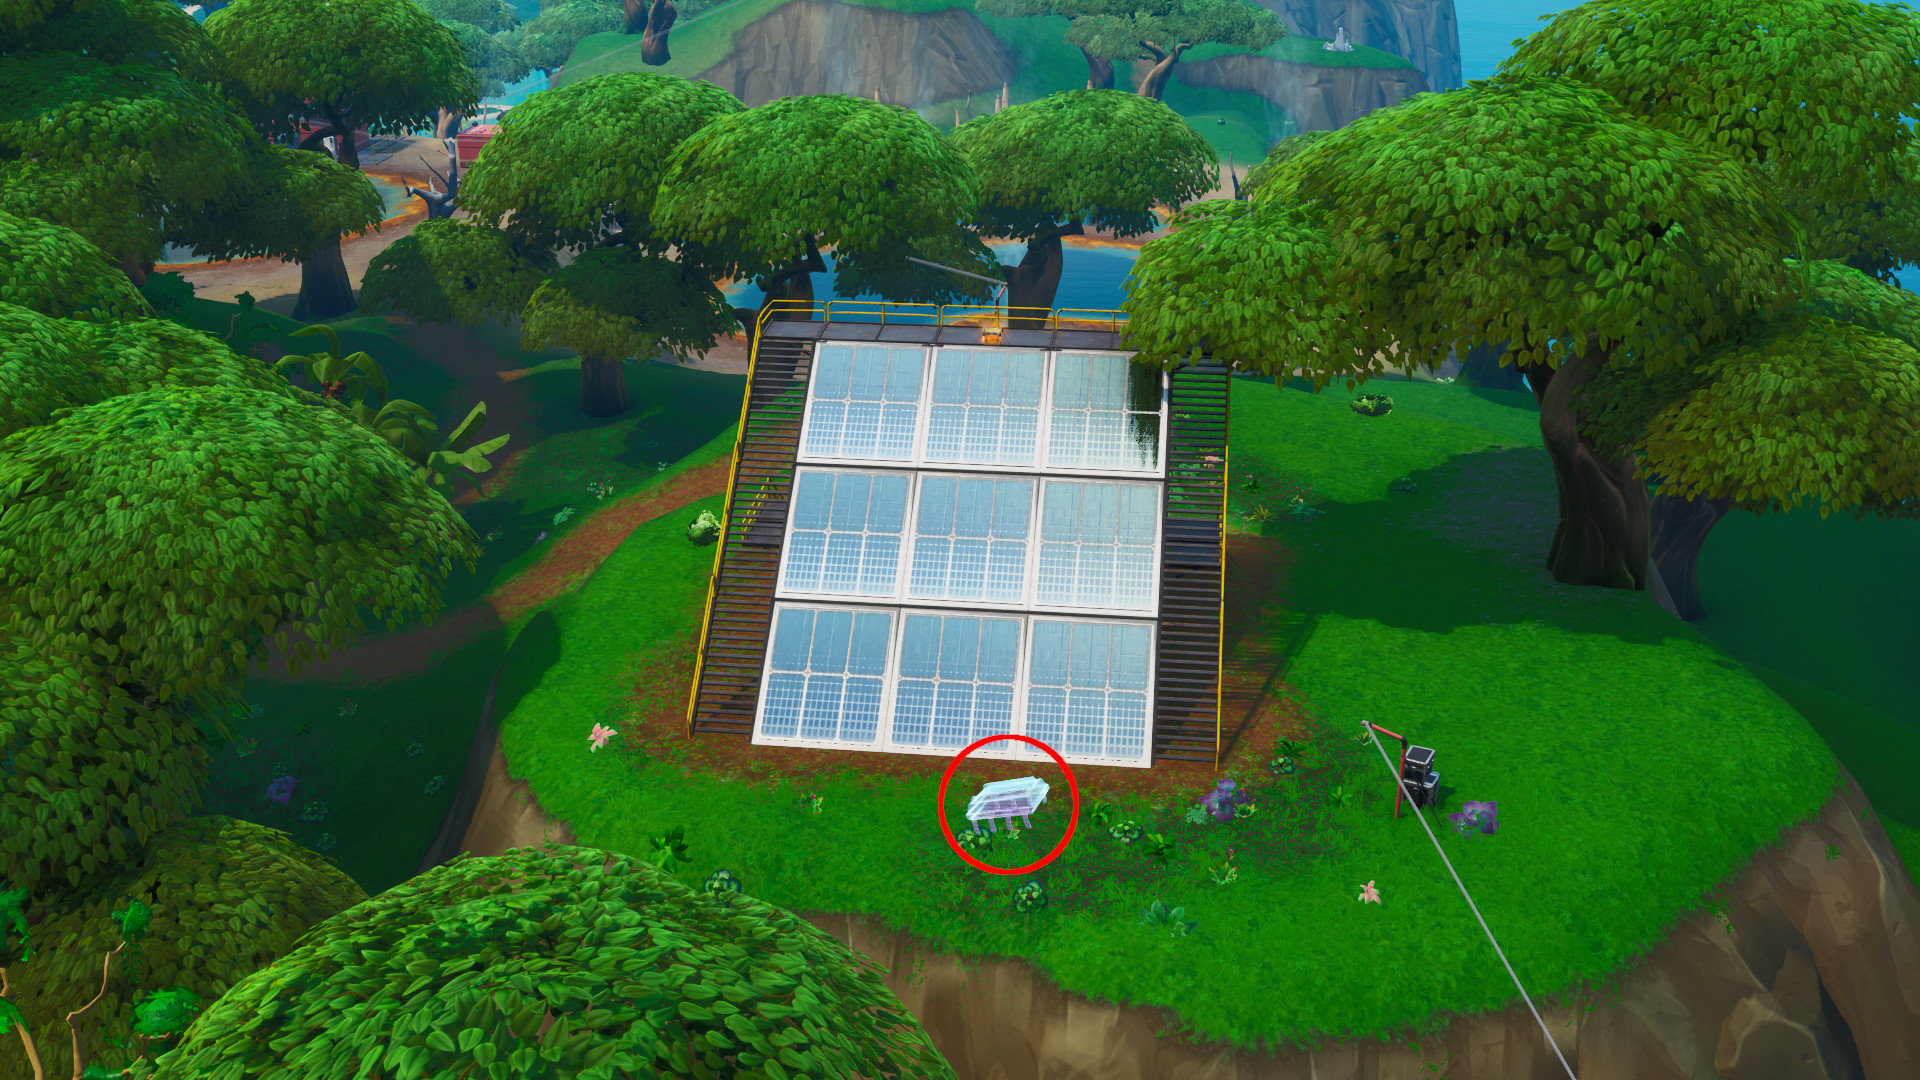 Photo of Fortbyte #95 Location, Found at a Solar Panel Array in the Jungle